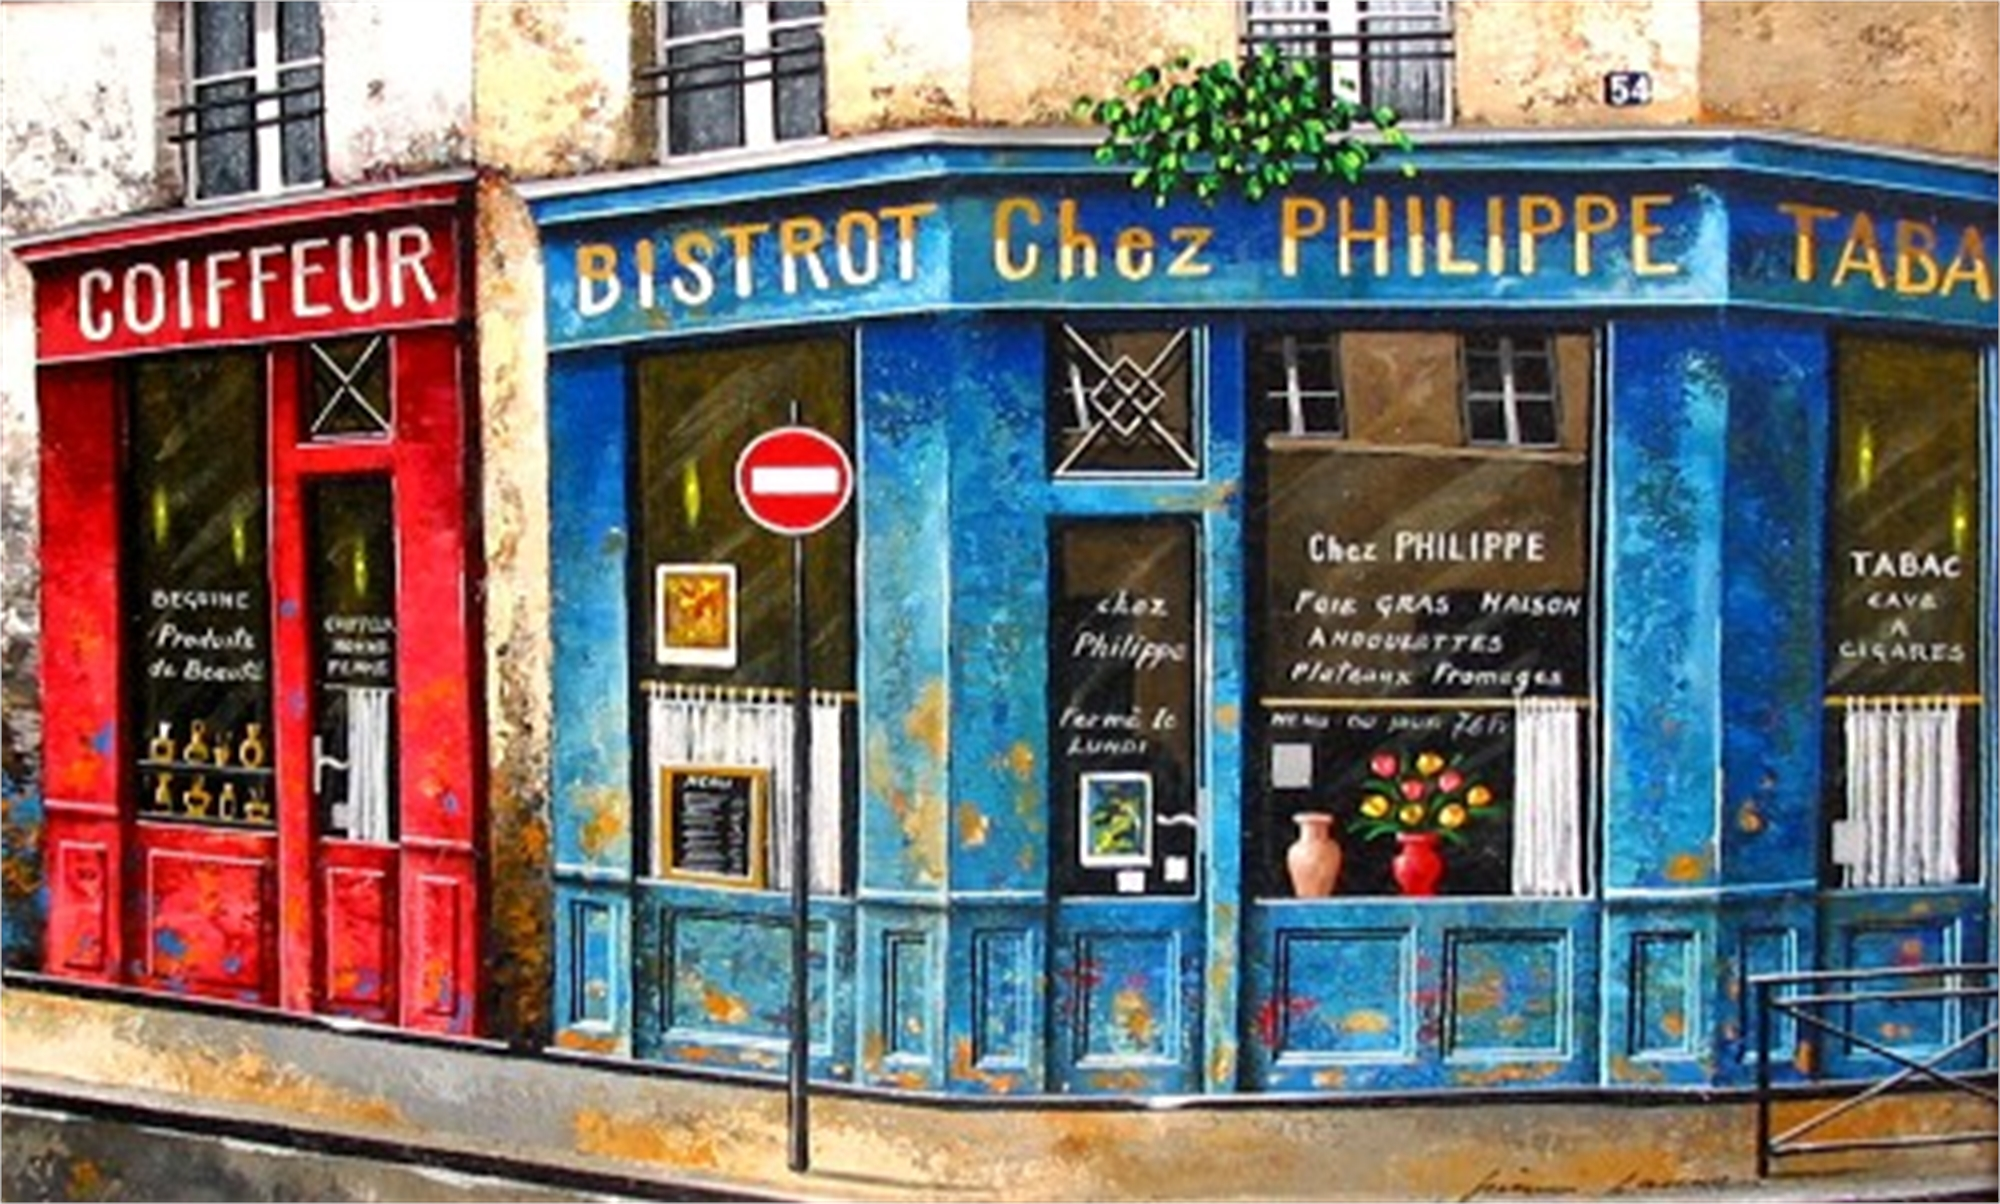 BISTROT CHEZ PHILIPPE by LANNA